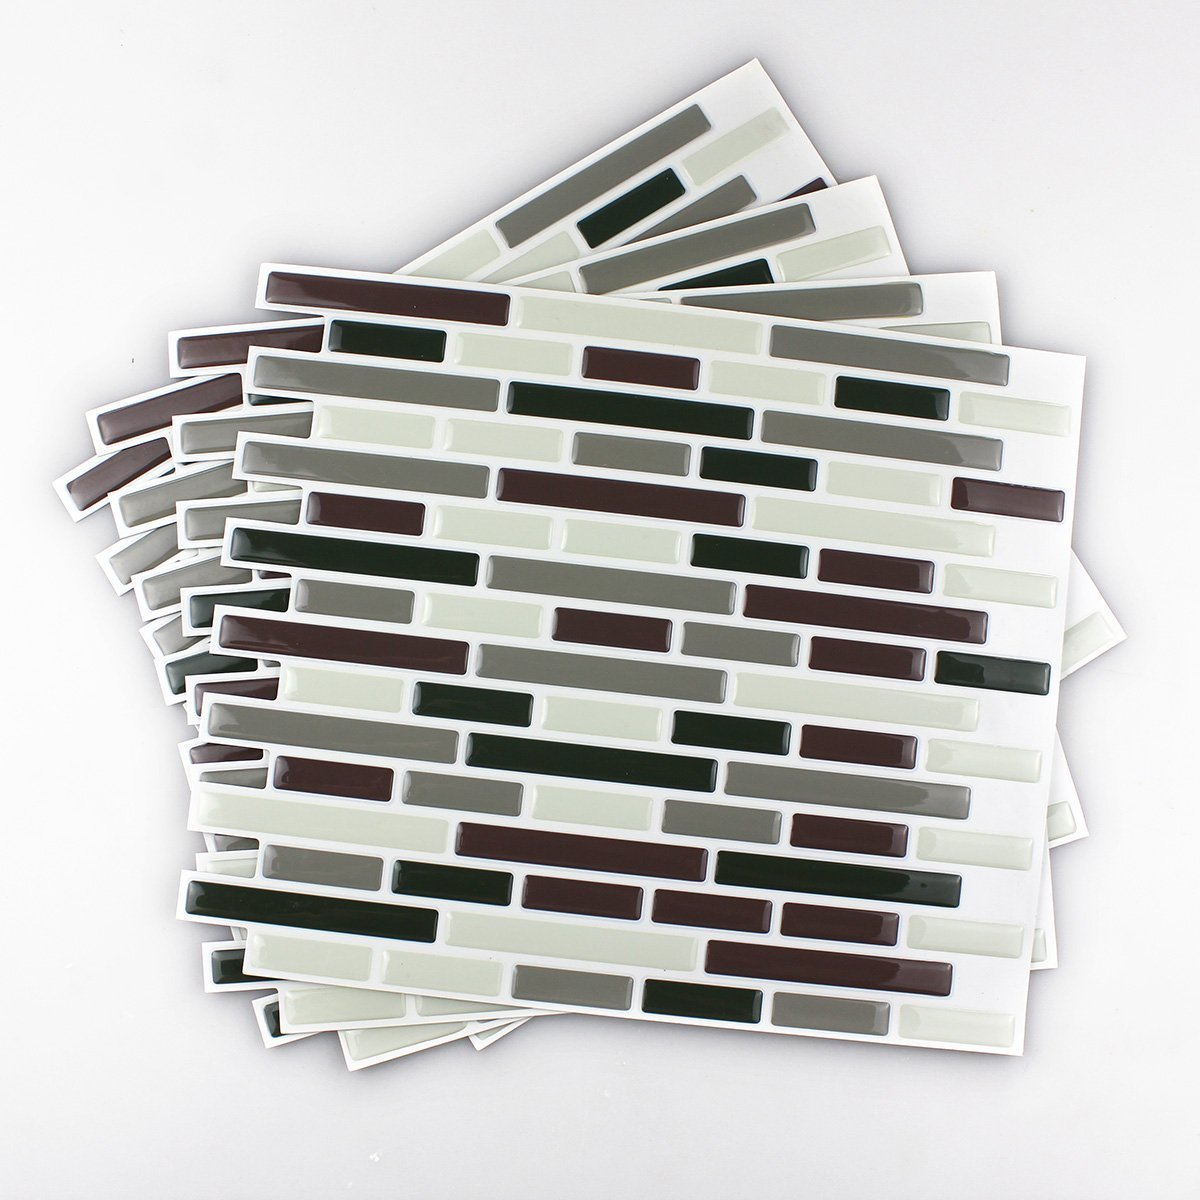 fancy-fix 4 Piece Vinyl Peel And Stick Wall Tile For Decorative Kitchen/Bathroom Backsplash Tiles TS004